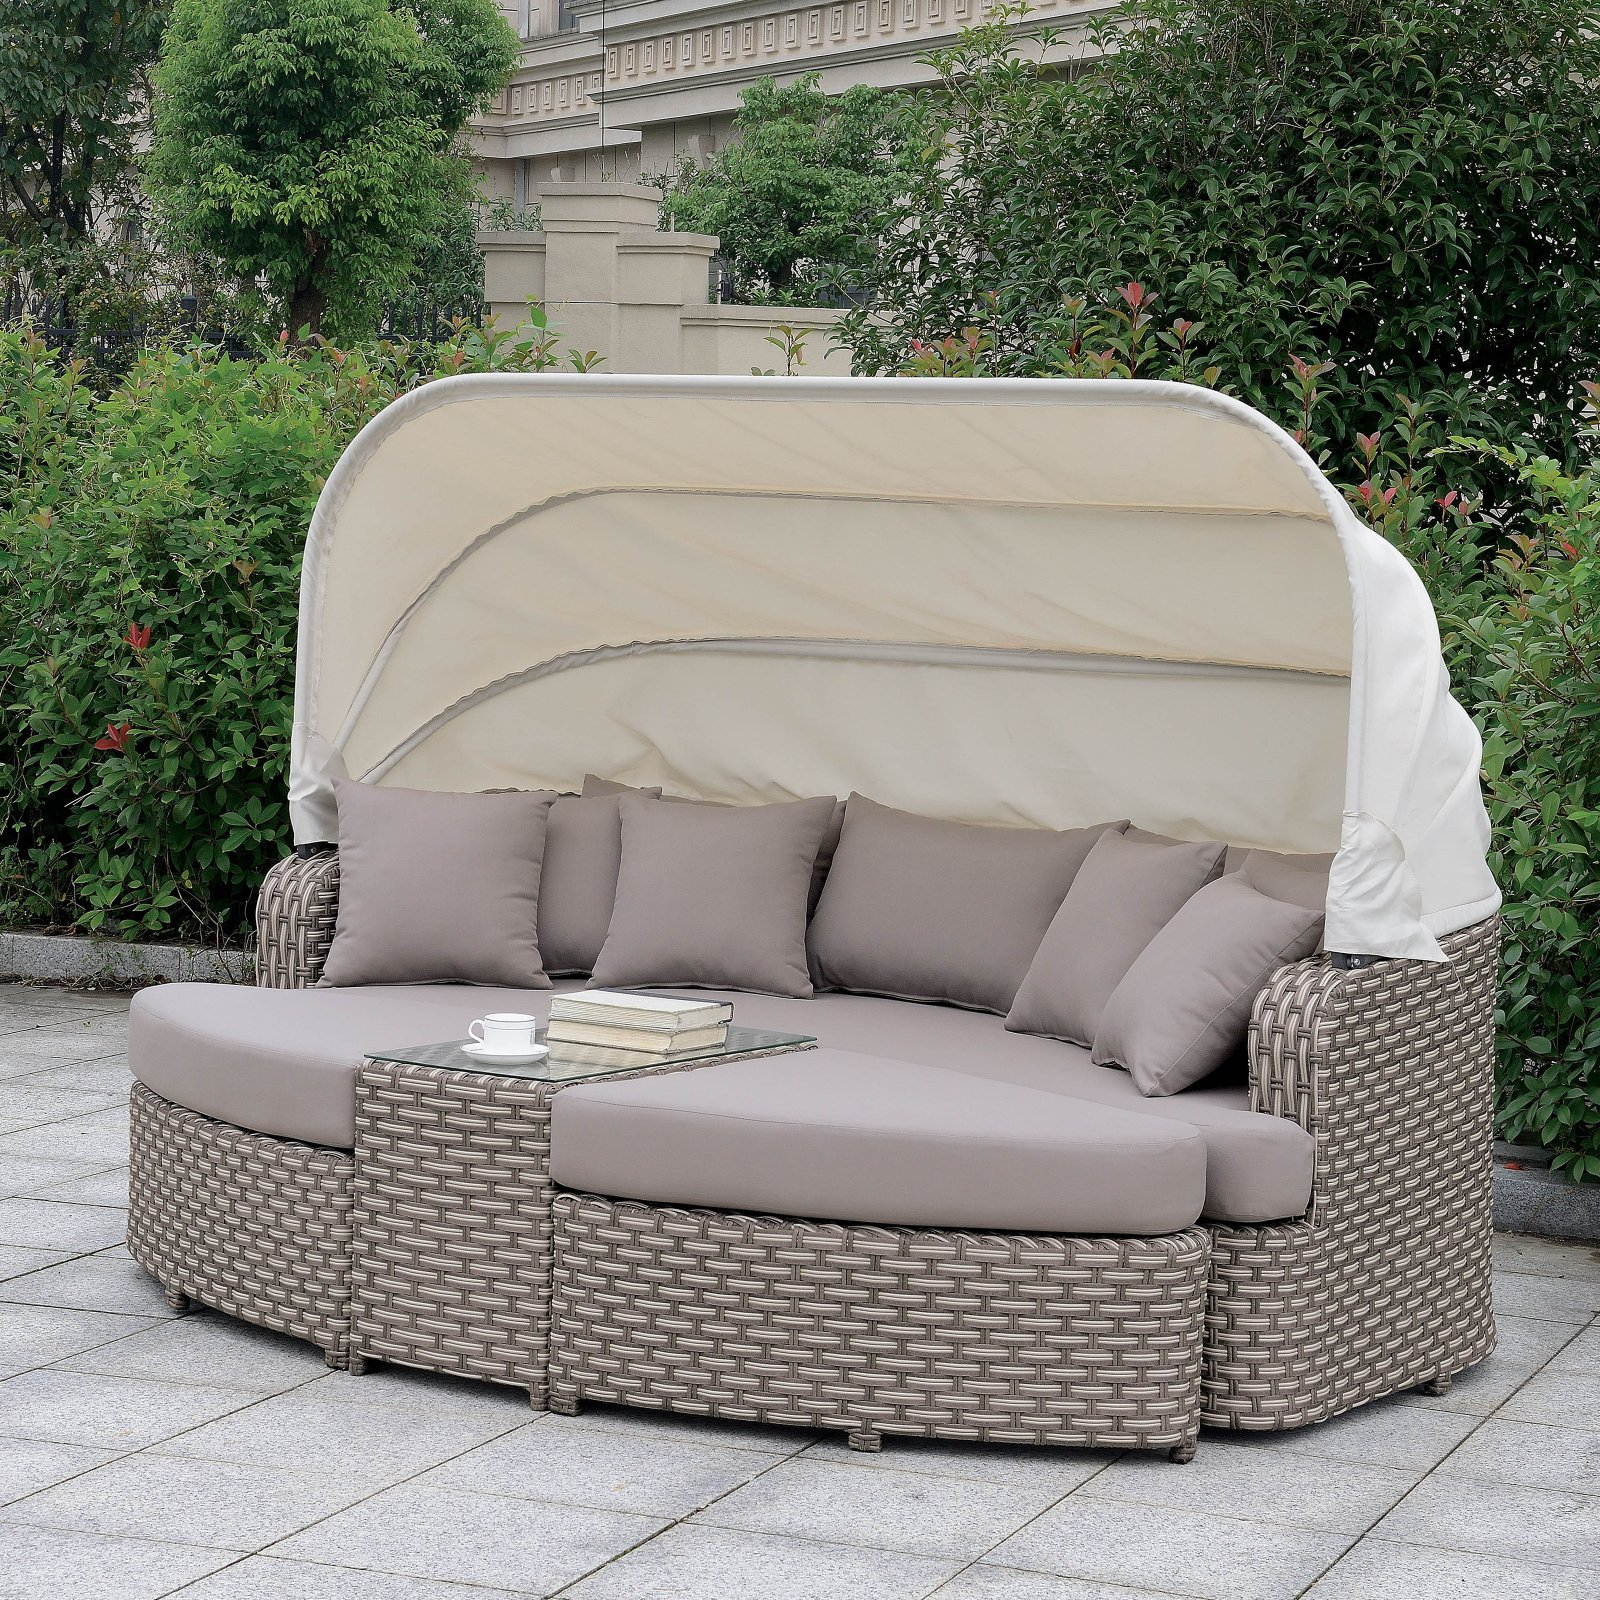 Furniture of America Calabasas Resin Wicker Outdoor Patio Daybed